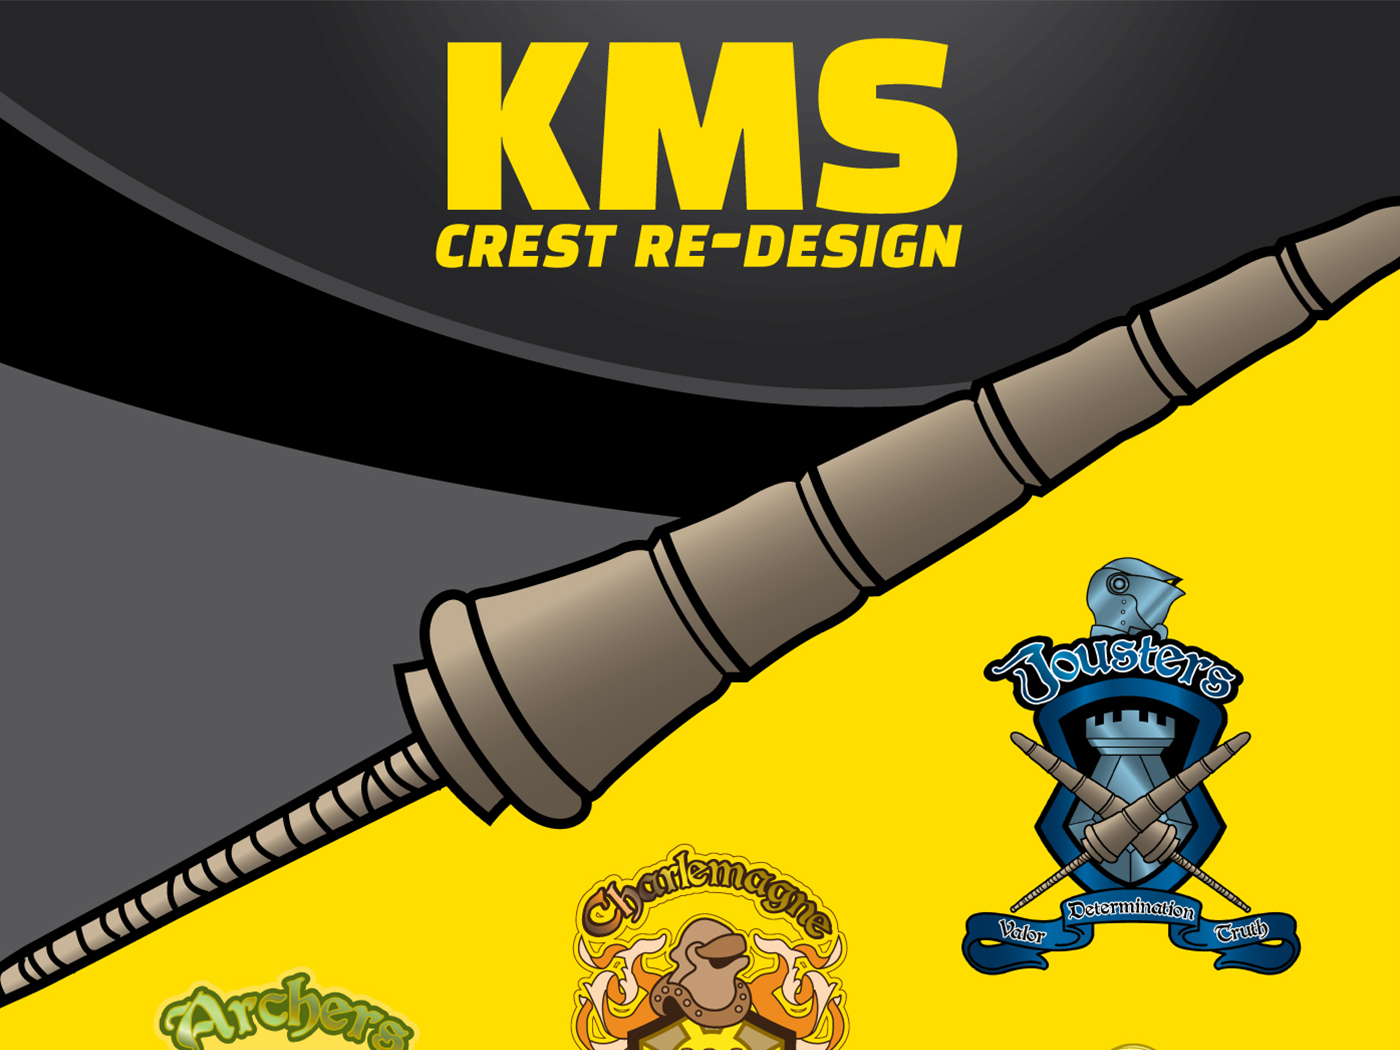 KMS: re-design